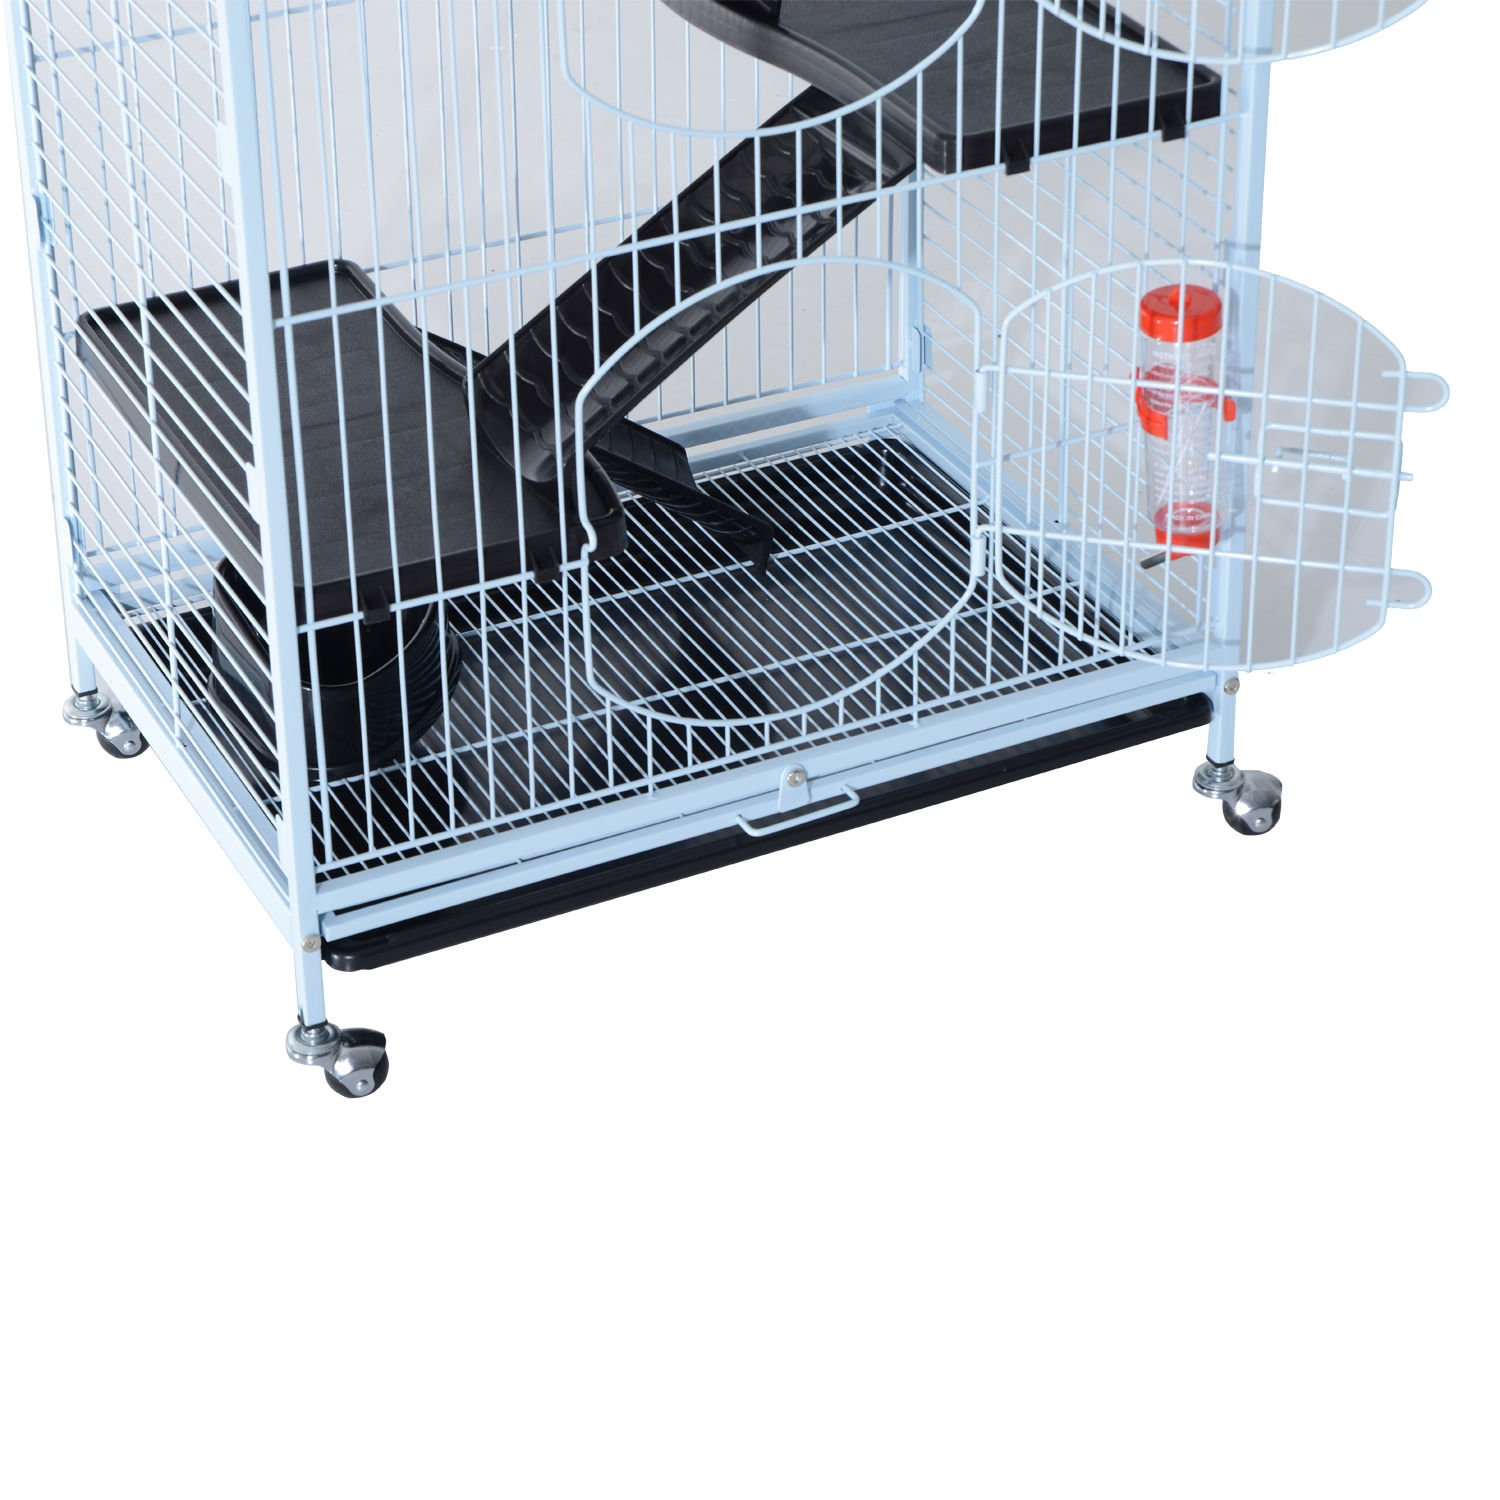 PawHut 37'' 4 Level Indoor Portable Pet Habitat Small Animal Cage Kit With Plastic Shelves And Ramps - White by PawHut (Image #4)